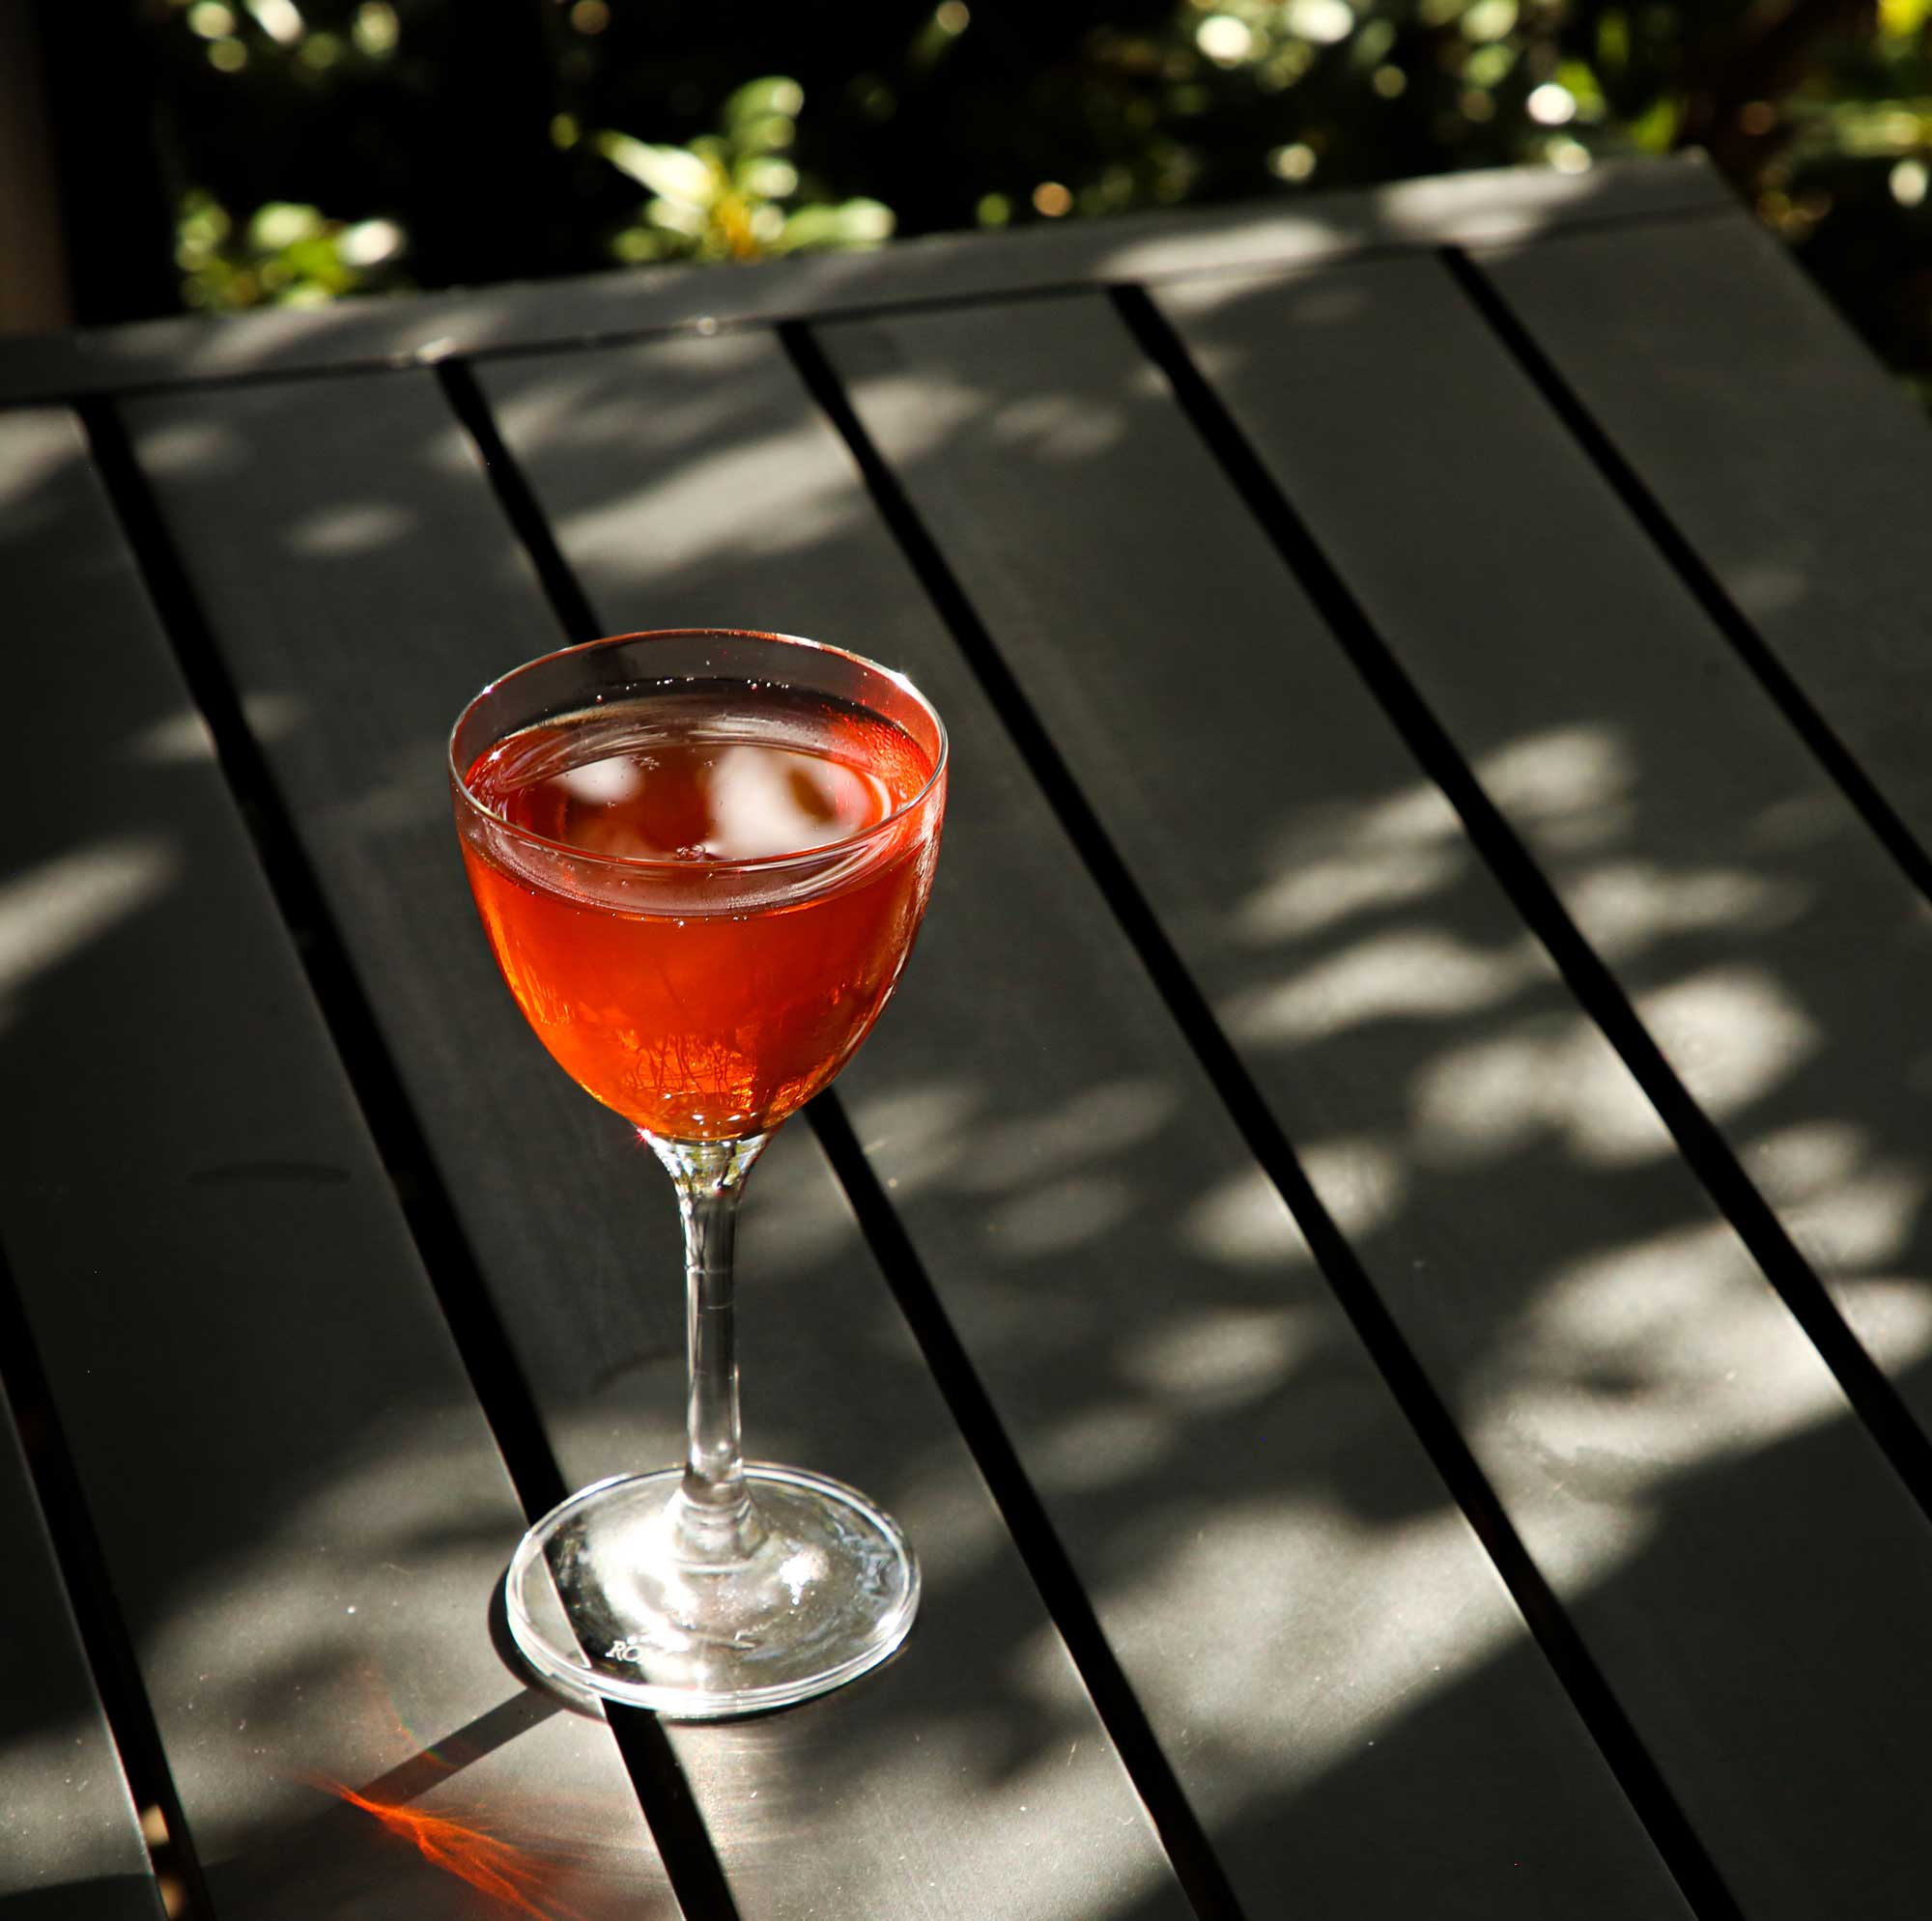 An example of the Caldera, the mixed drink (cocktail), by Liz Kelley, Cure, New Orleans, featuring reposado tequila, Aperitivo Cappelletti, and Zirbenz Stone Pine Liqueur of the Alps; photo by Liz Kelley